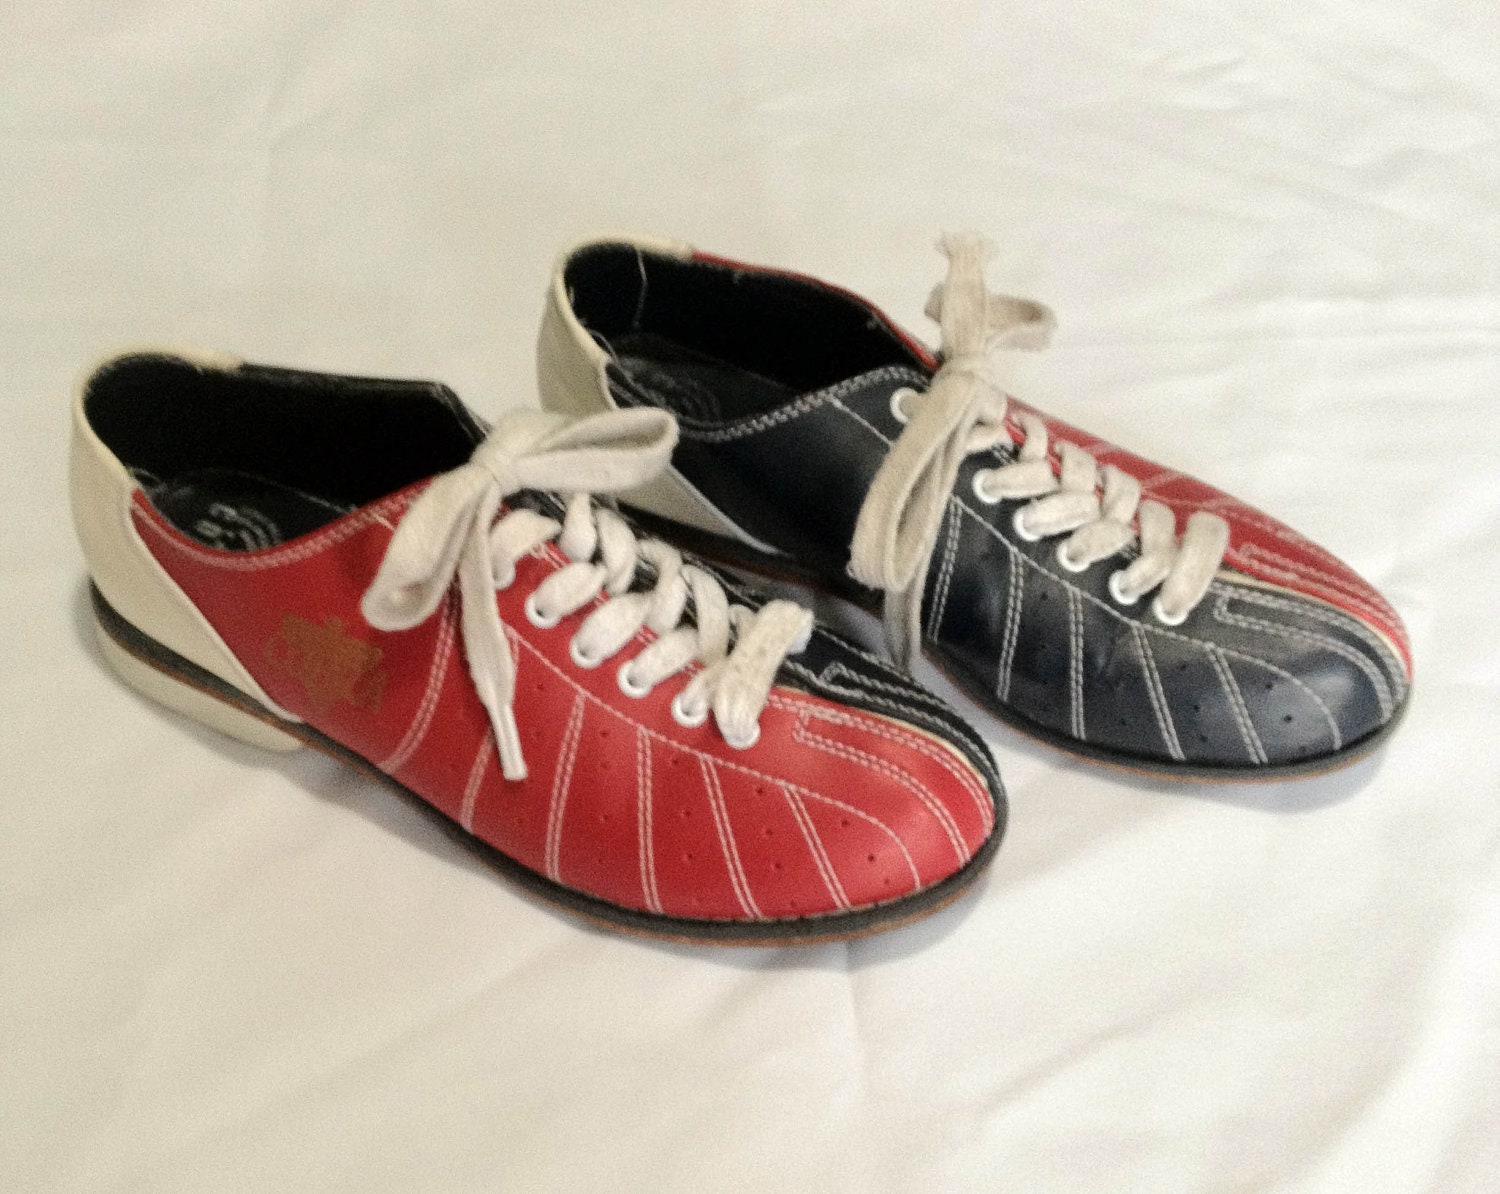 get lucky bowling shoes vintage white and navy blue